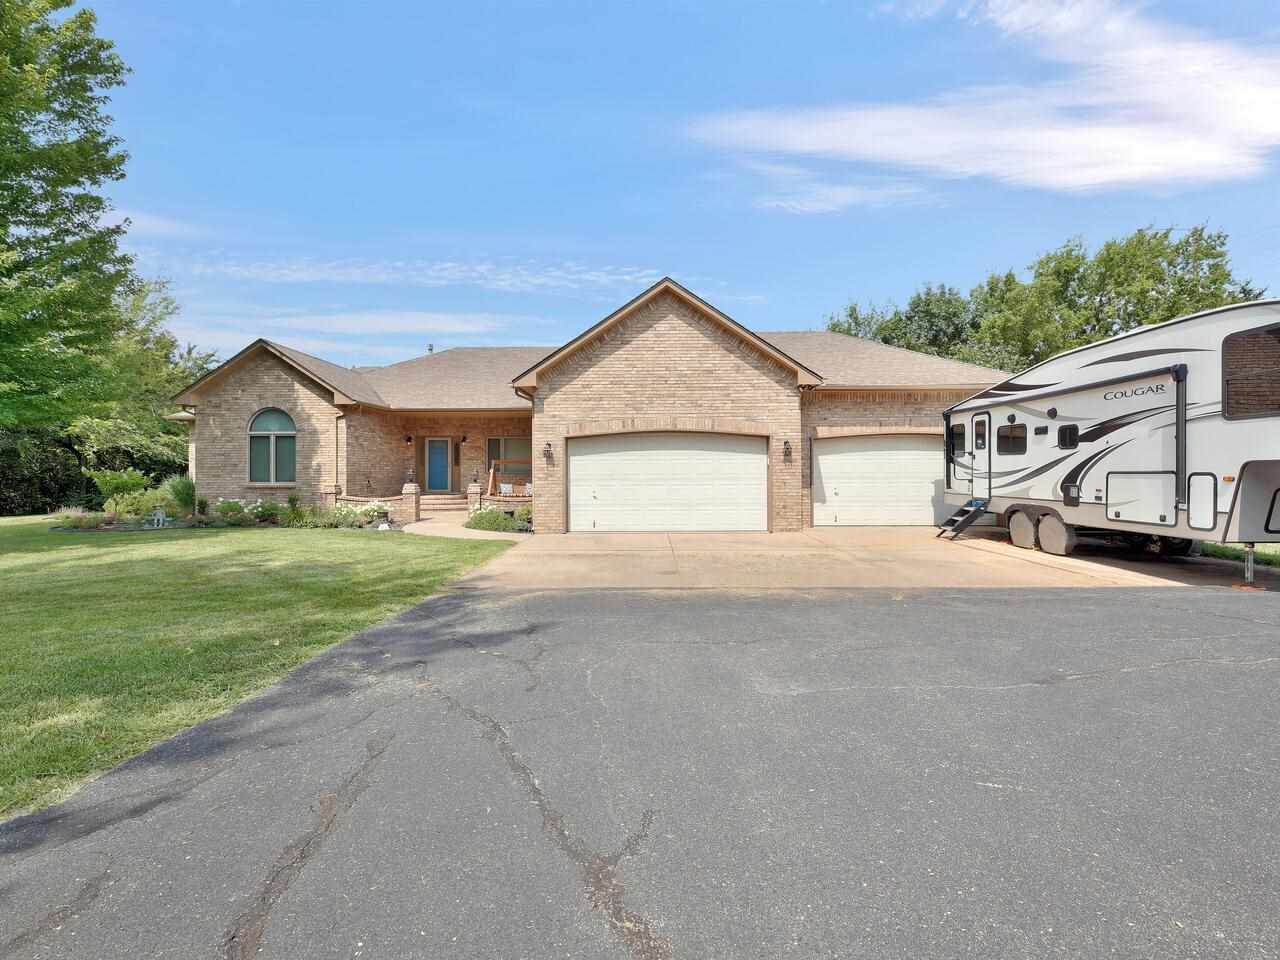 415 Red Powell Dr - Photo 1